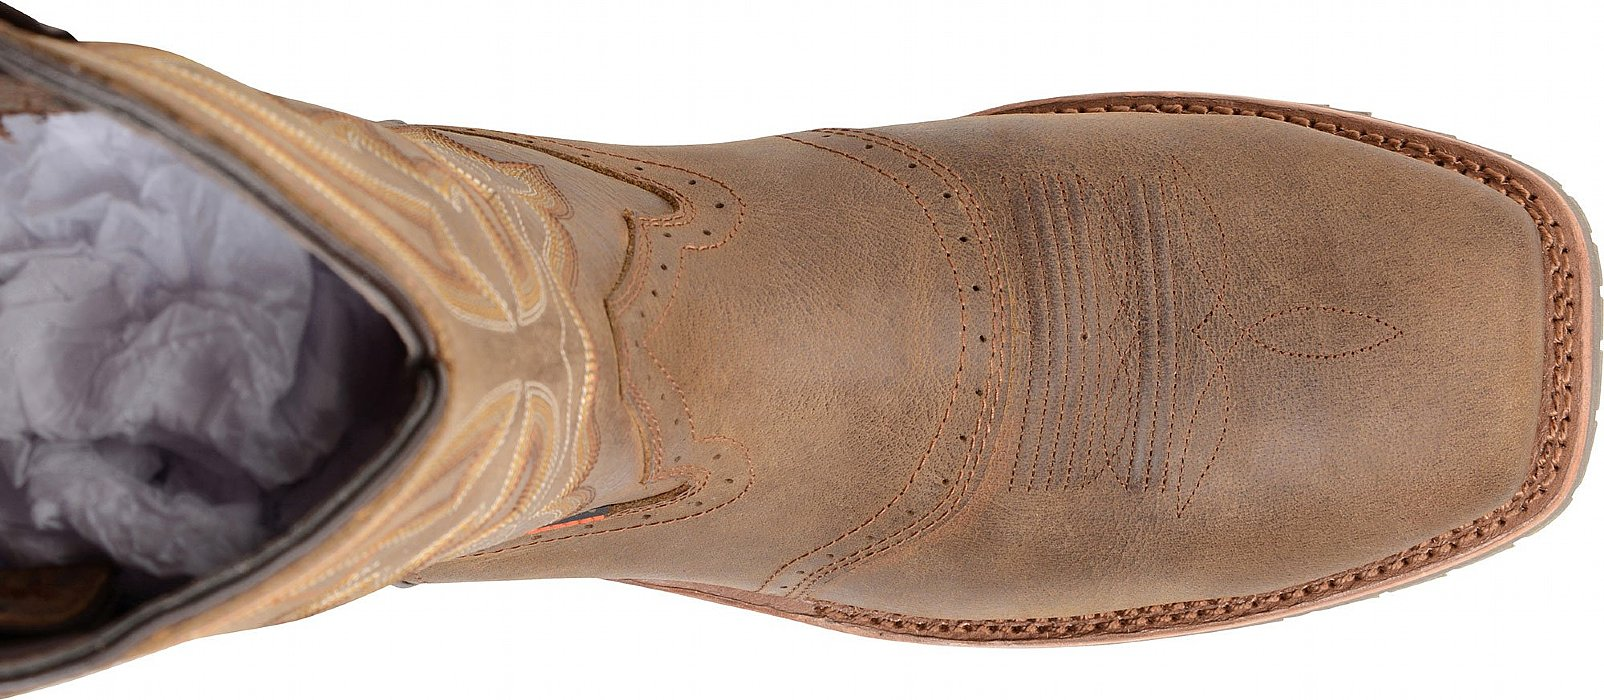 Double H Boot - DH5124 Men's 11 Wide